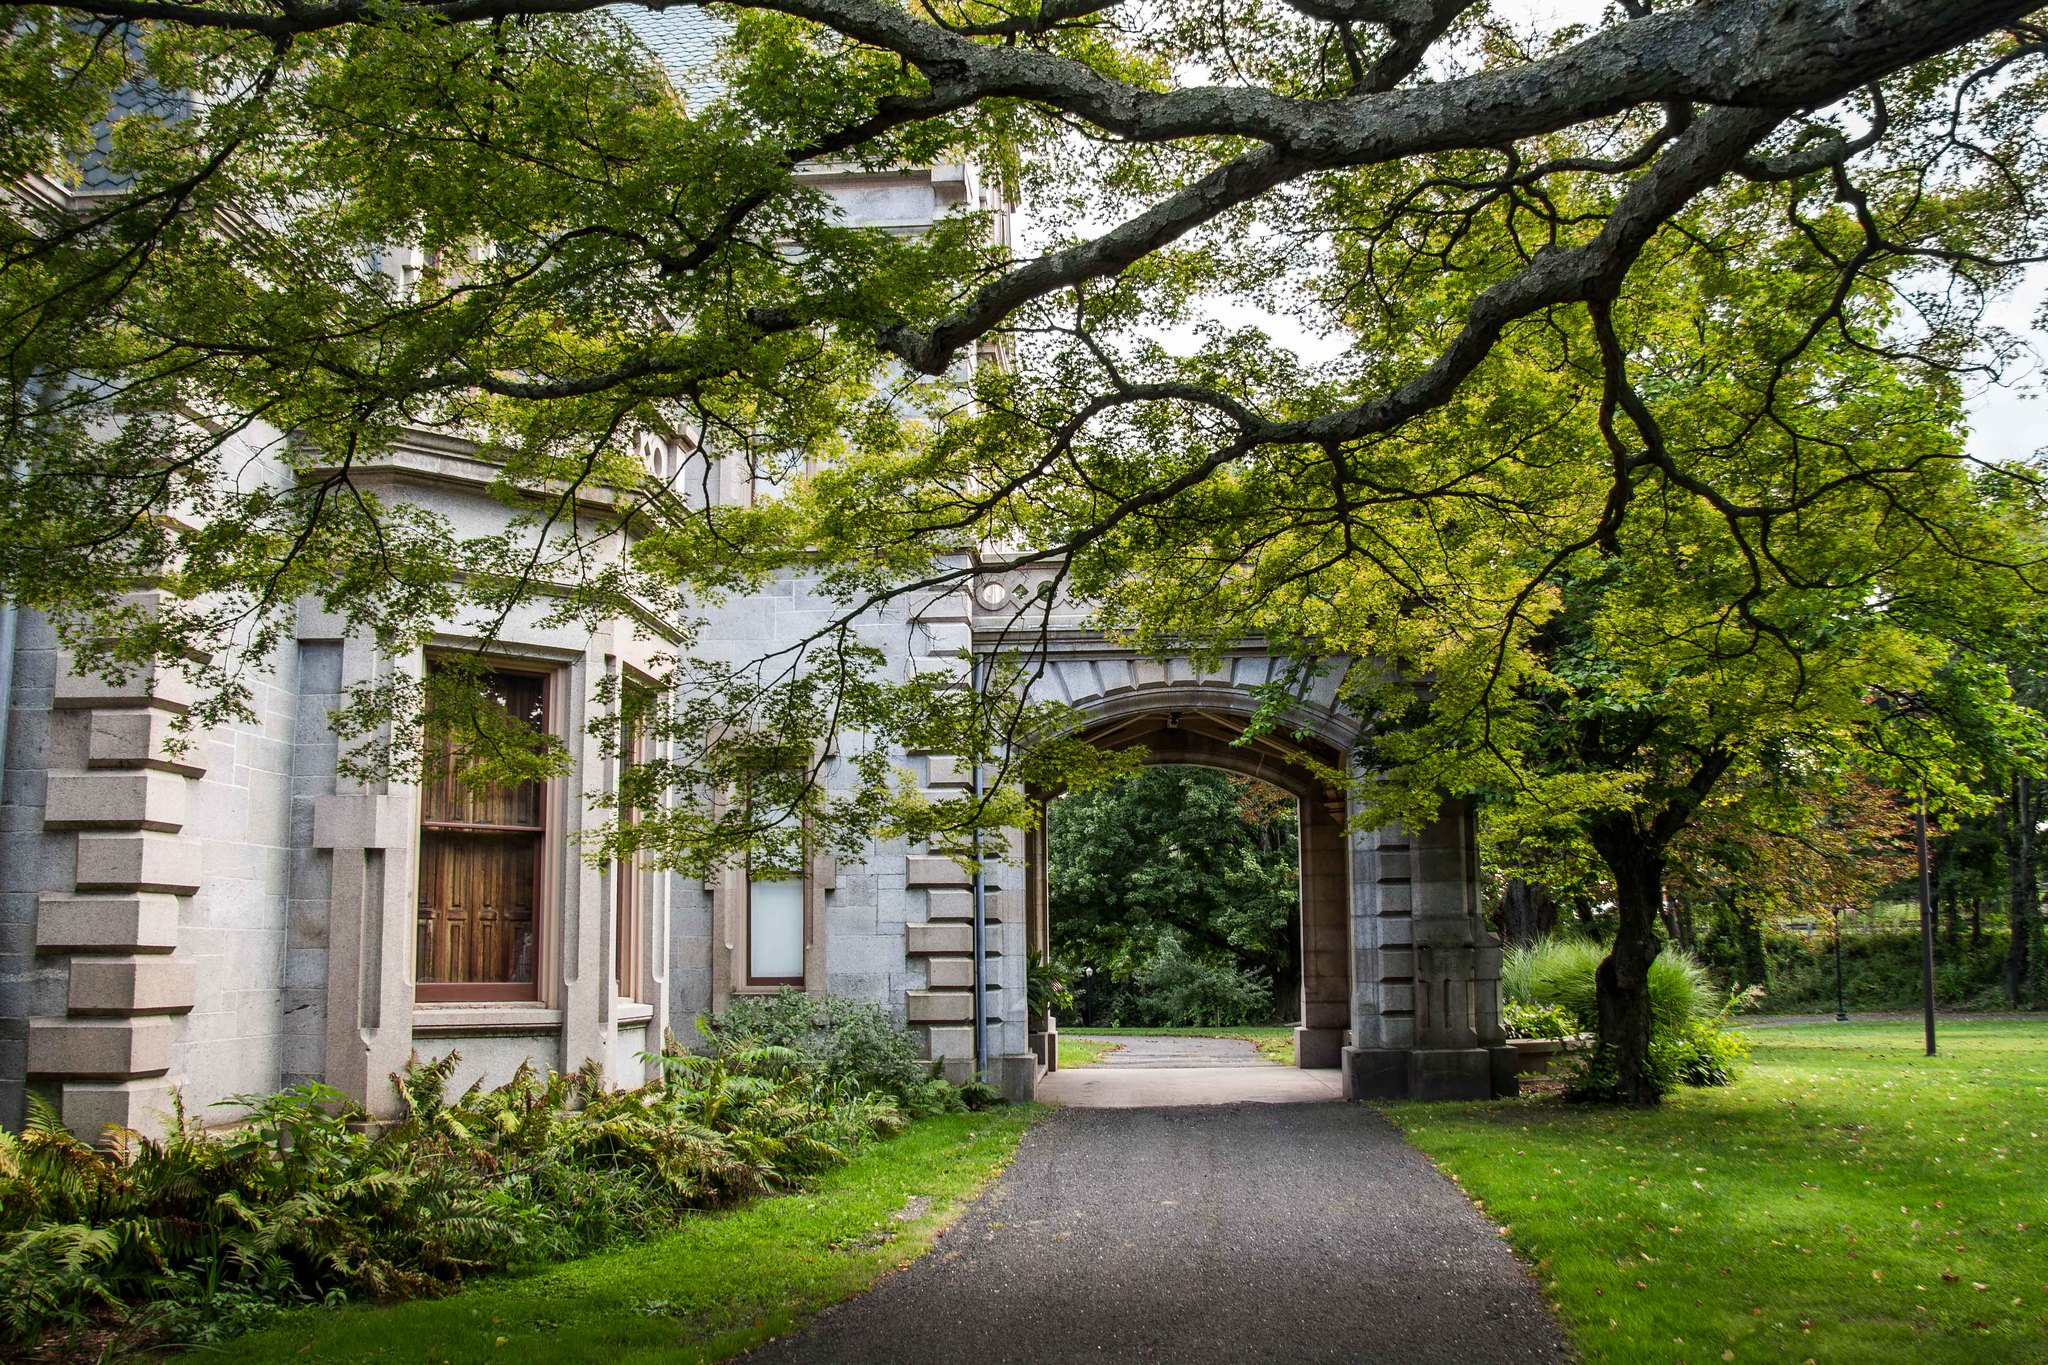 Inside the Lockwood-Mathews Mansion – Lost in the Lens